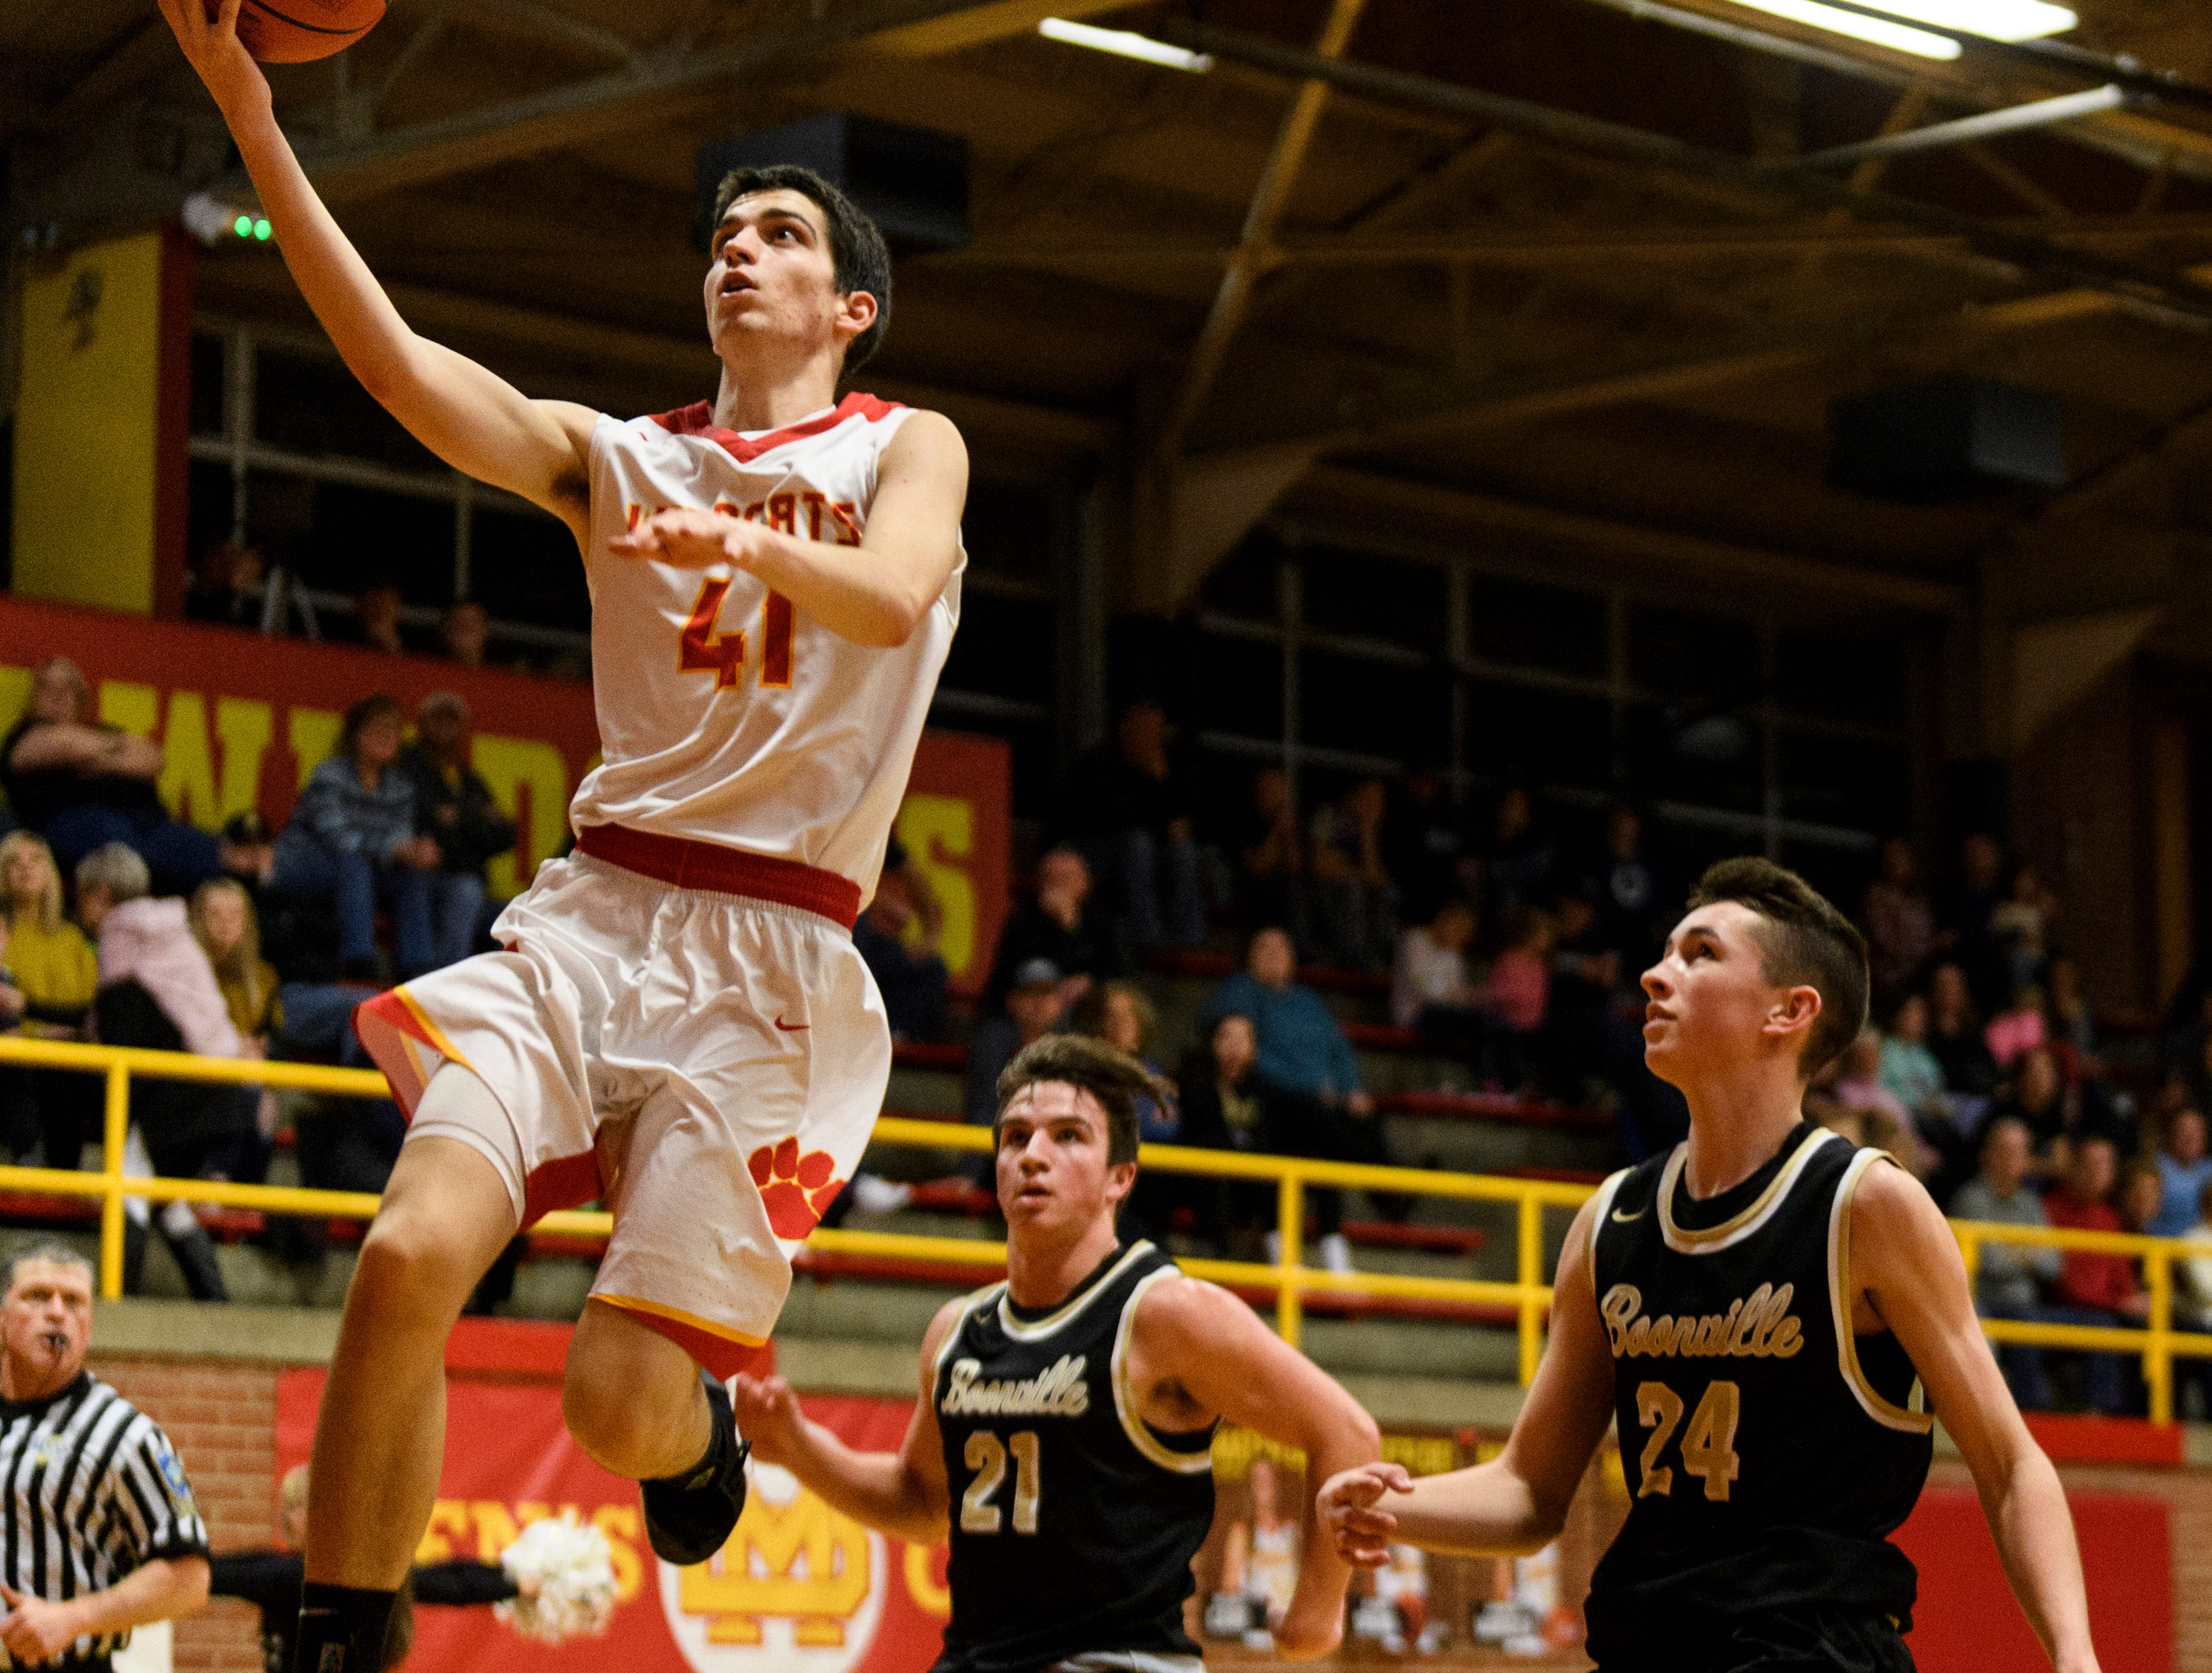 Mater Dei's Andy Heldman (41) drives to the net for a lay-up during the third quarter against the Boonville Pioneers at Mater Dei High School in Evansville, Ind., Saturday, Jan. 5, 2019. The Wildcats defeated the Pioneers, 93-65.